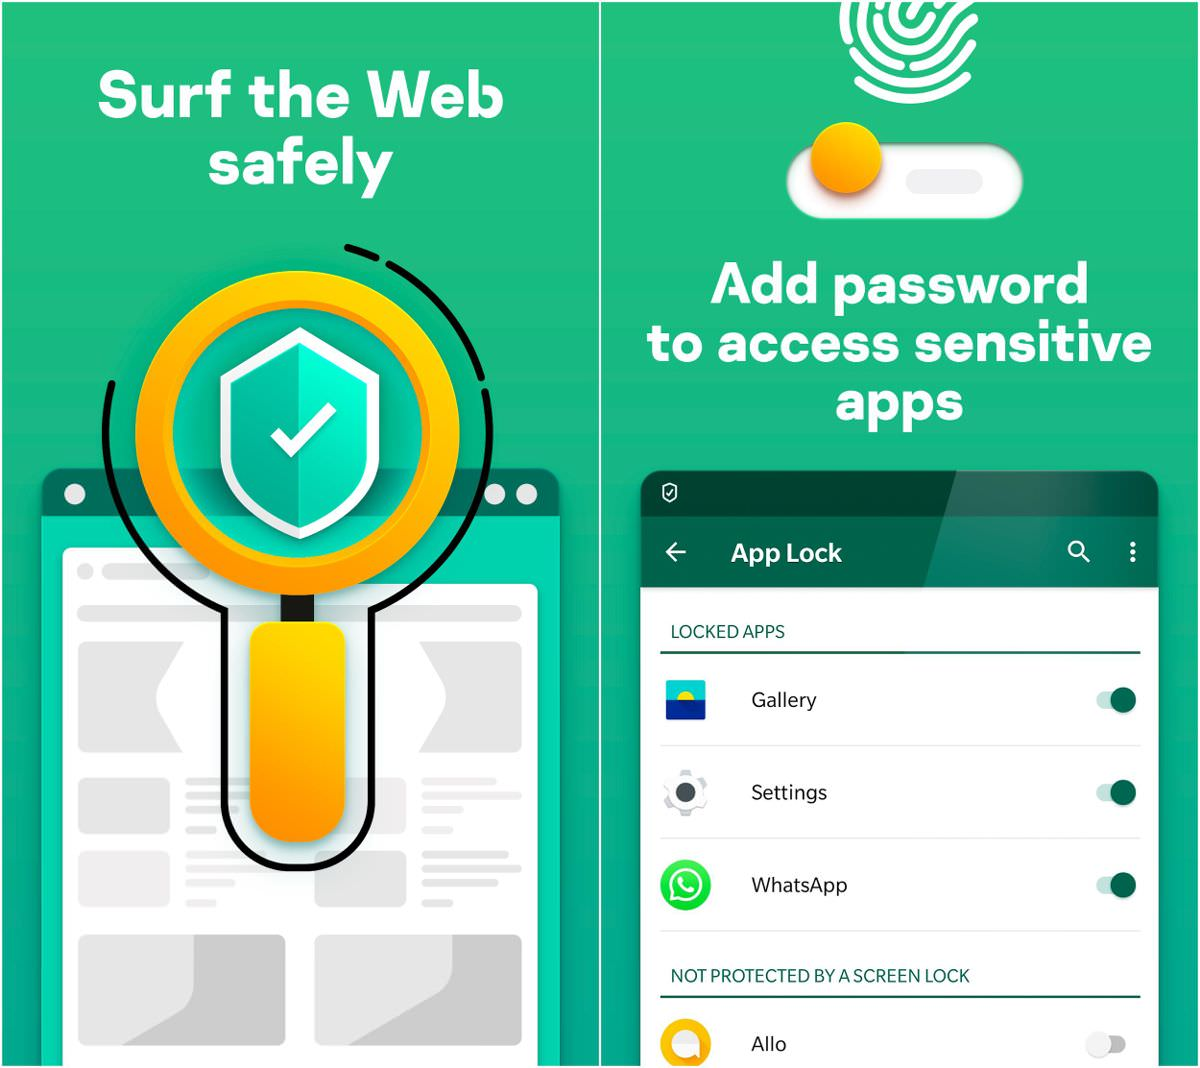 Kaspersky Antivirus offers Web Filter and App Lock